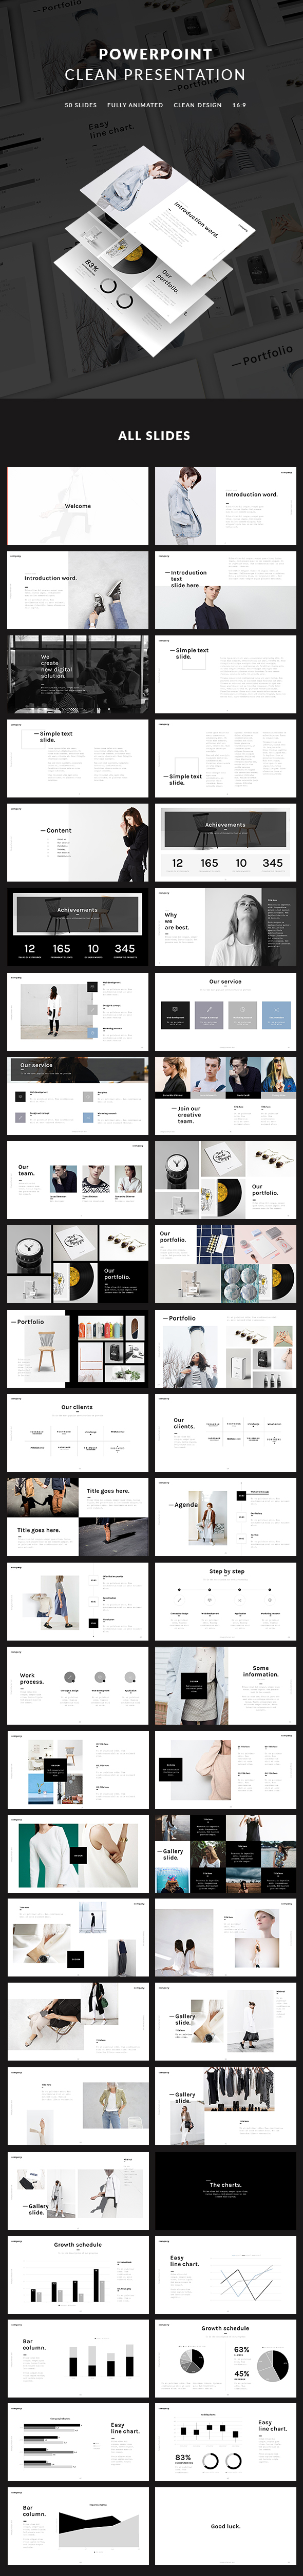 Clean Presentation (PowerPoint Templates)